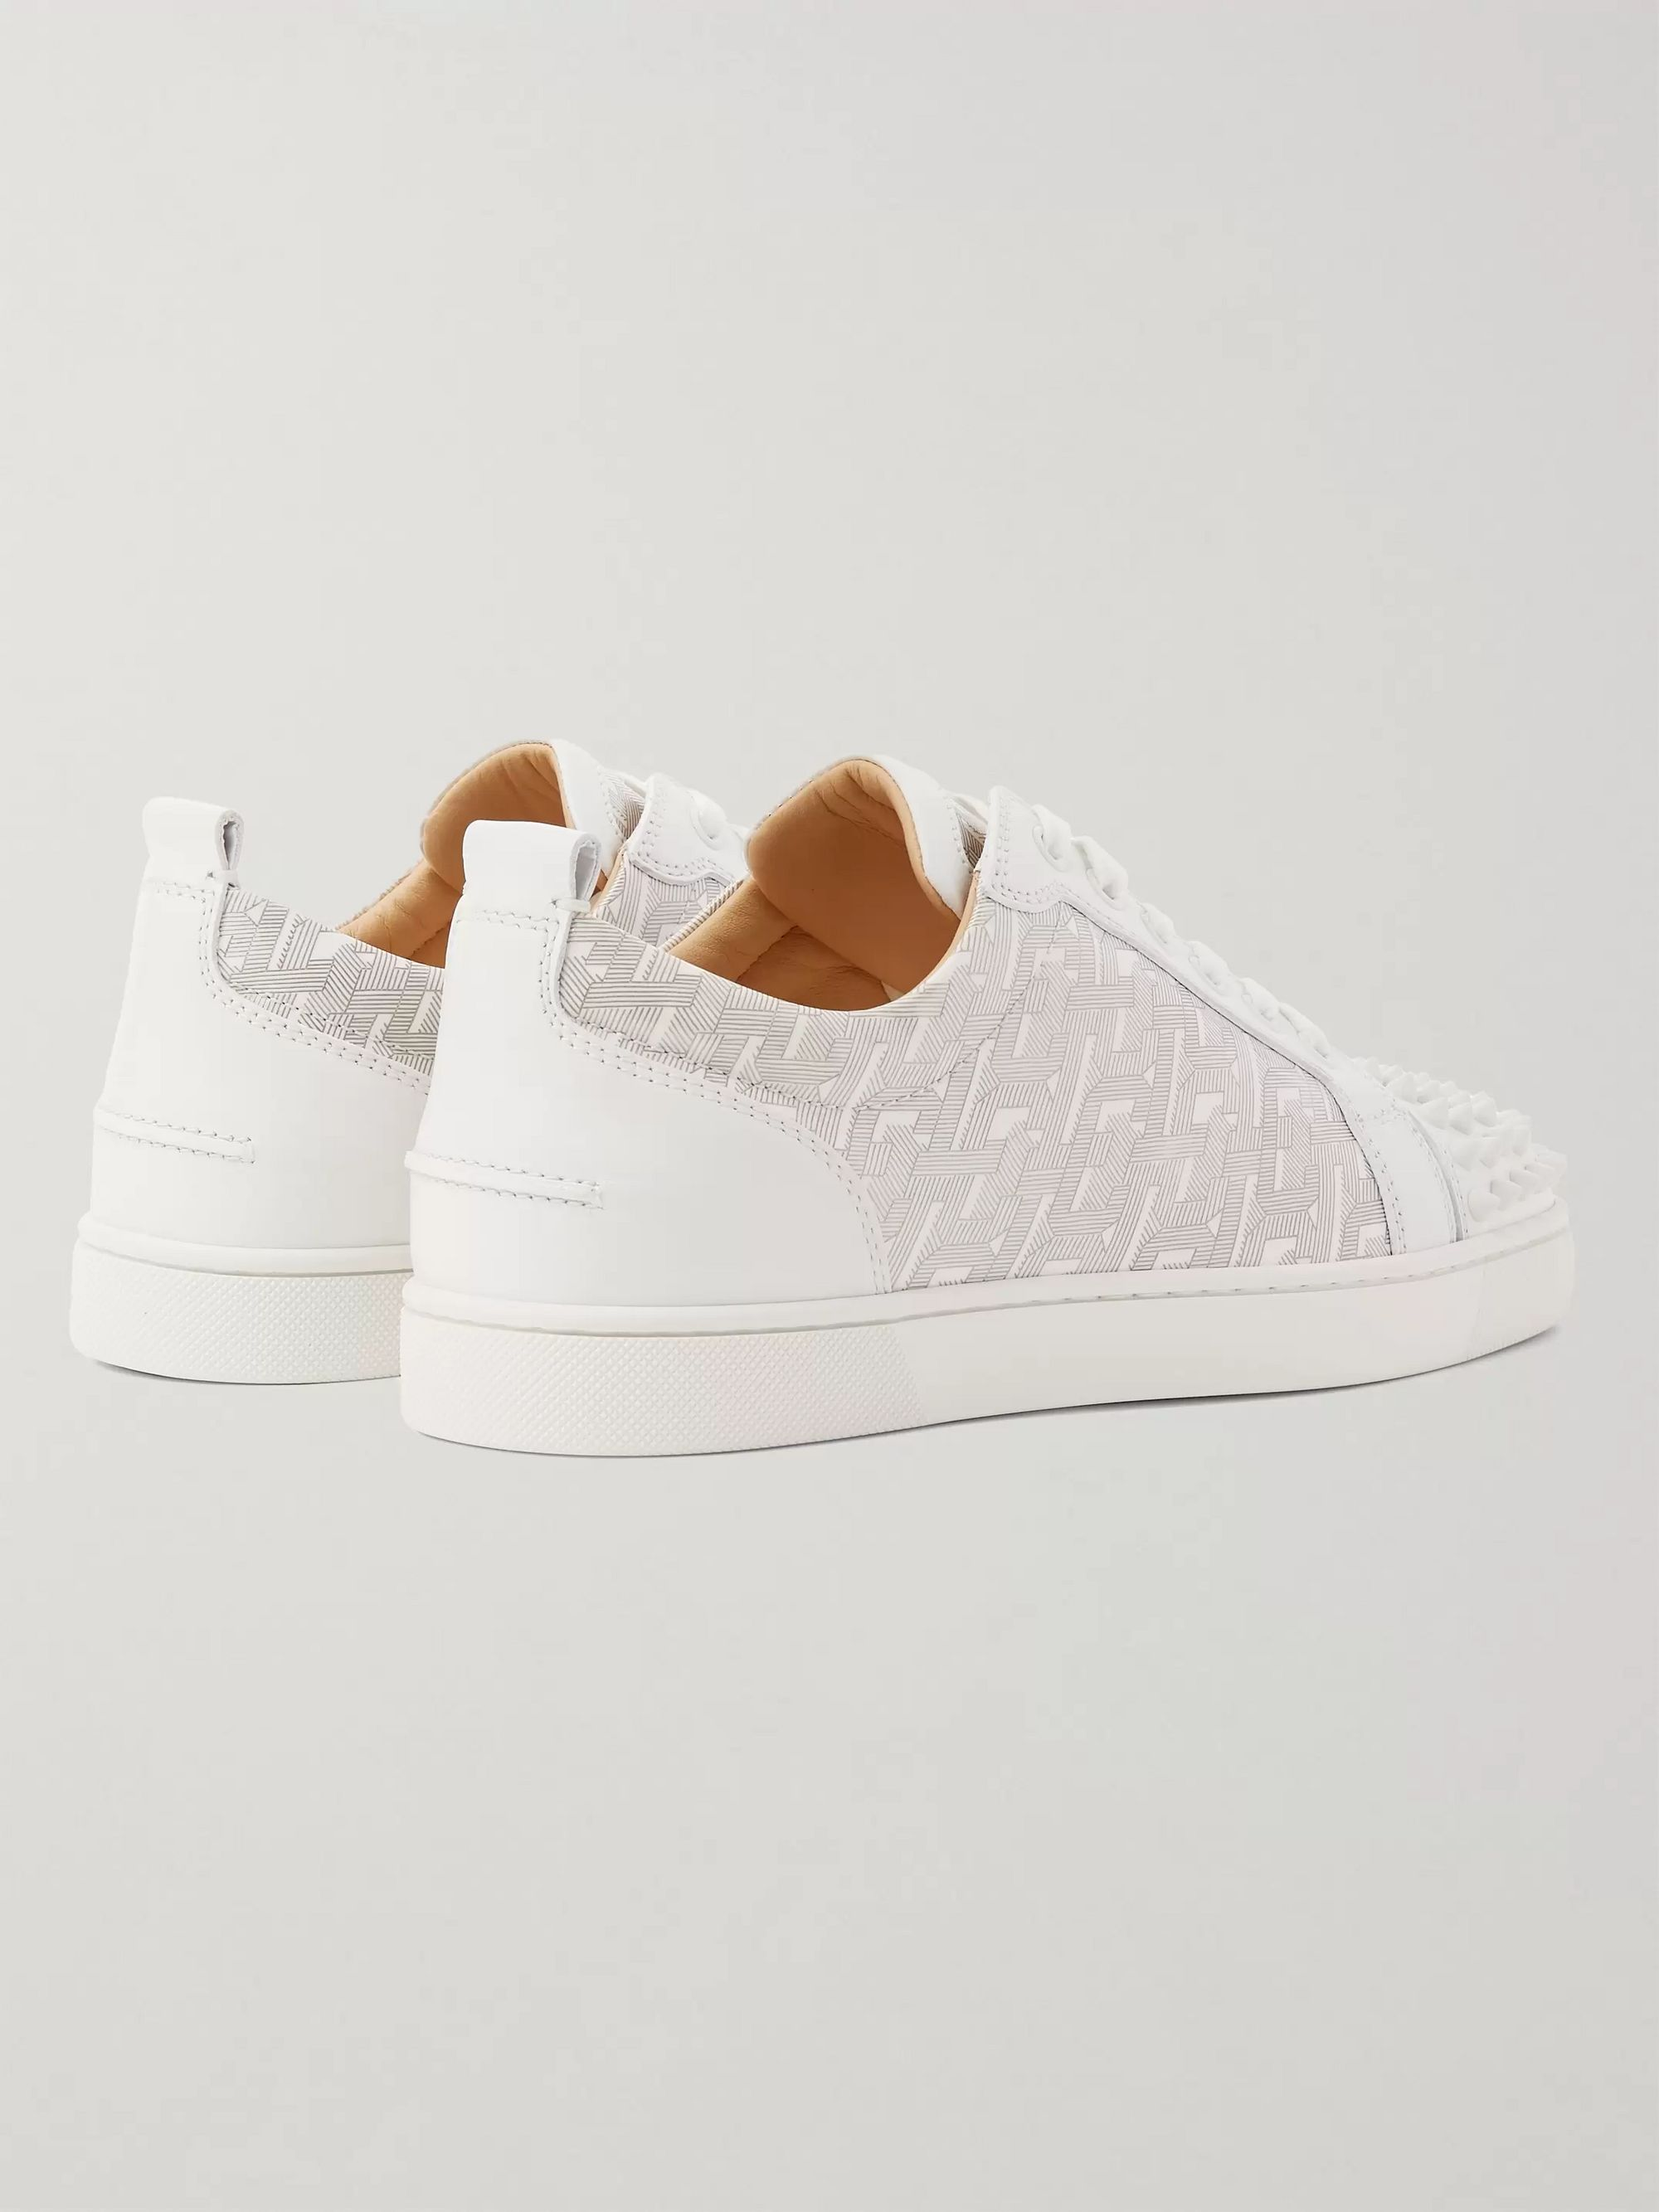 Christian Louboutin Louis Junior Spikes Printed Leather Sneakers